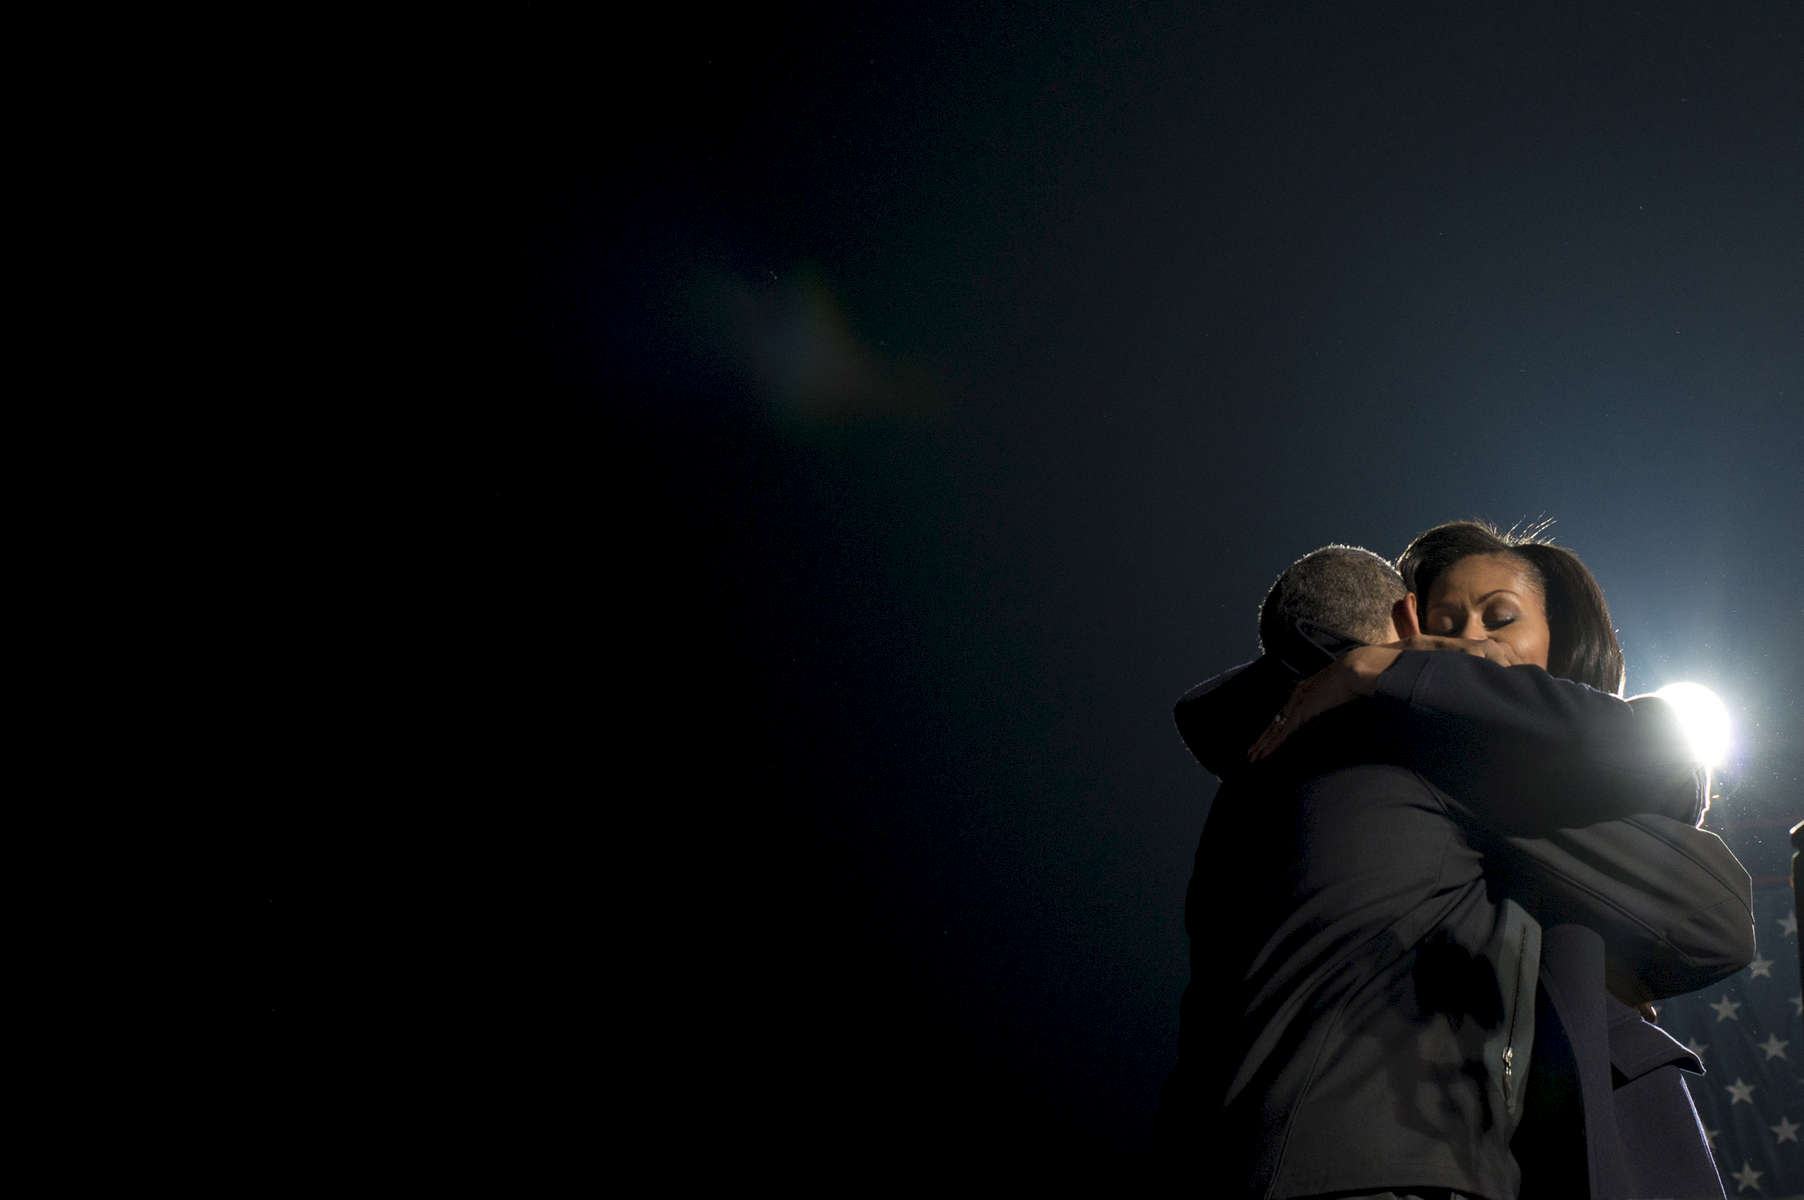 November 5, 2012 - Des Moines, IA:  President Barack Obama and First Lady Michelle Obama embrace onstage during his last ever campaign event the night before the 2012 election. (Scout Tufankjian for Obama for America/Polaris)